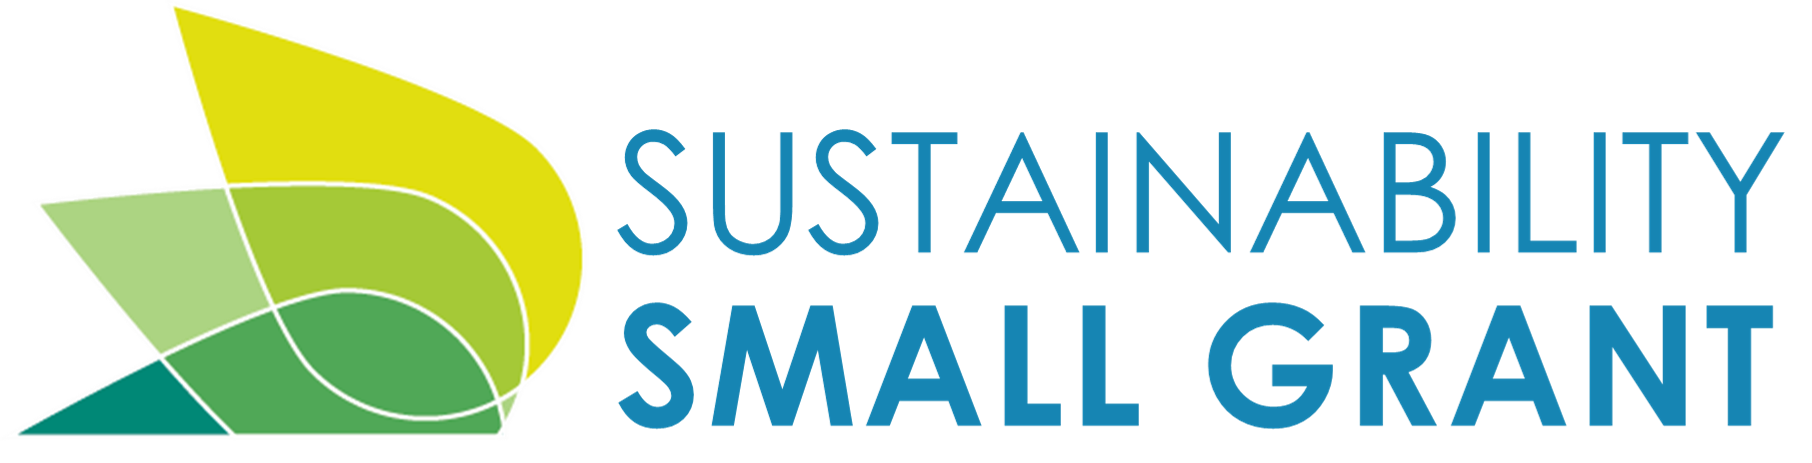 Sustainability Small Grant Program